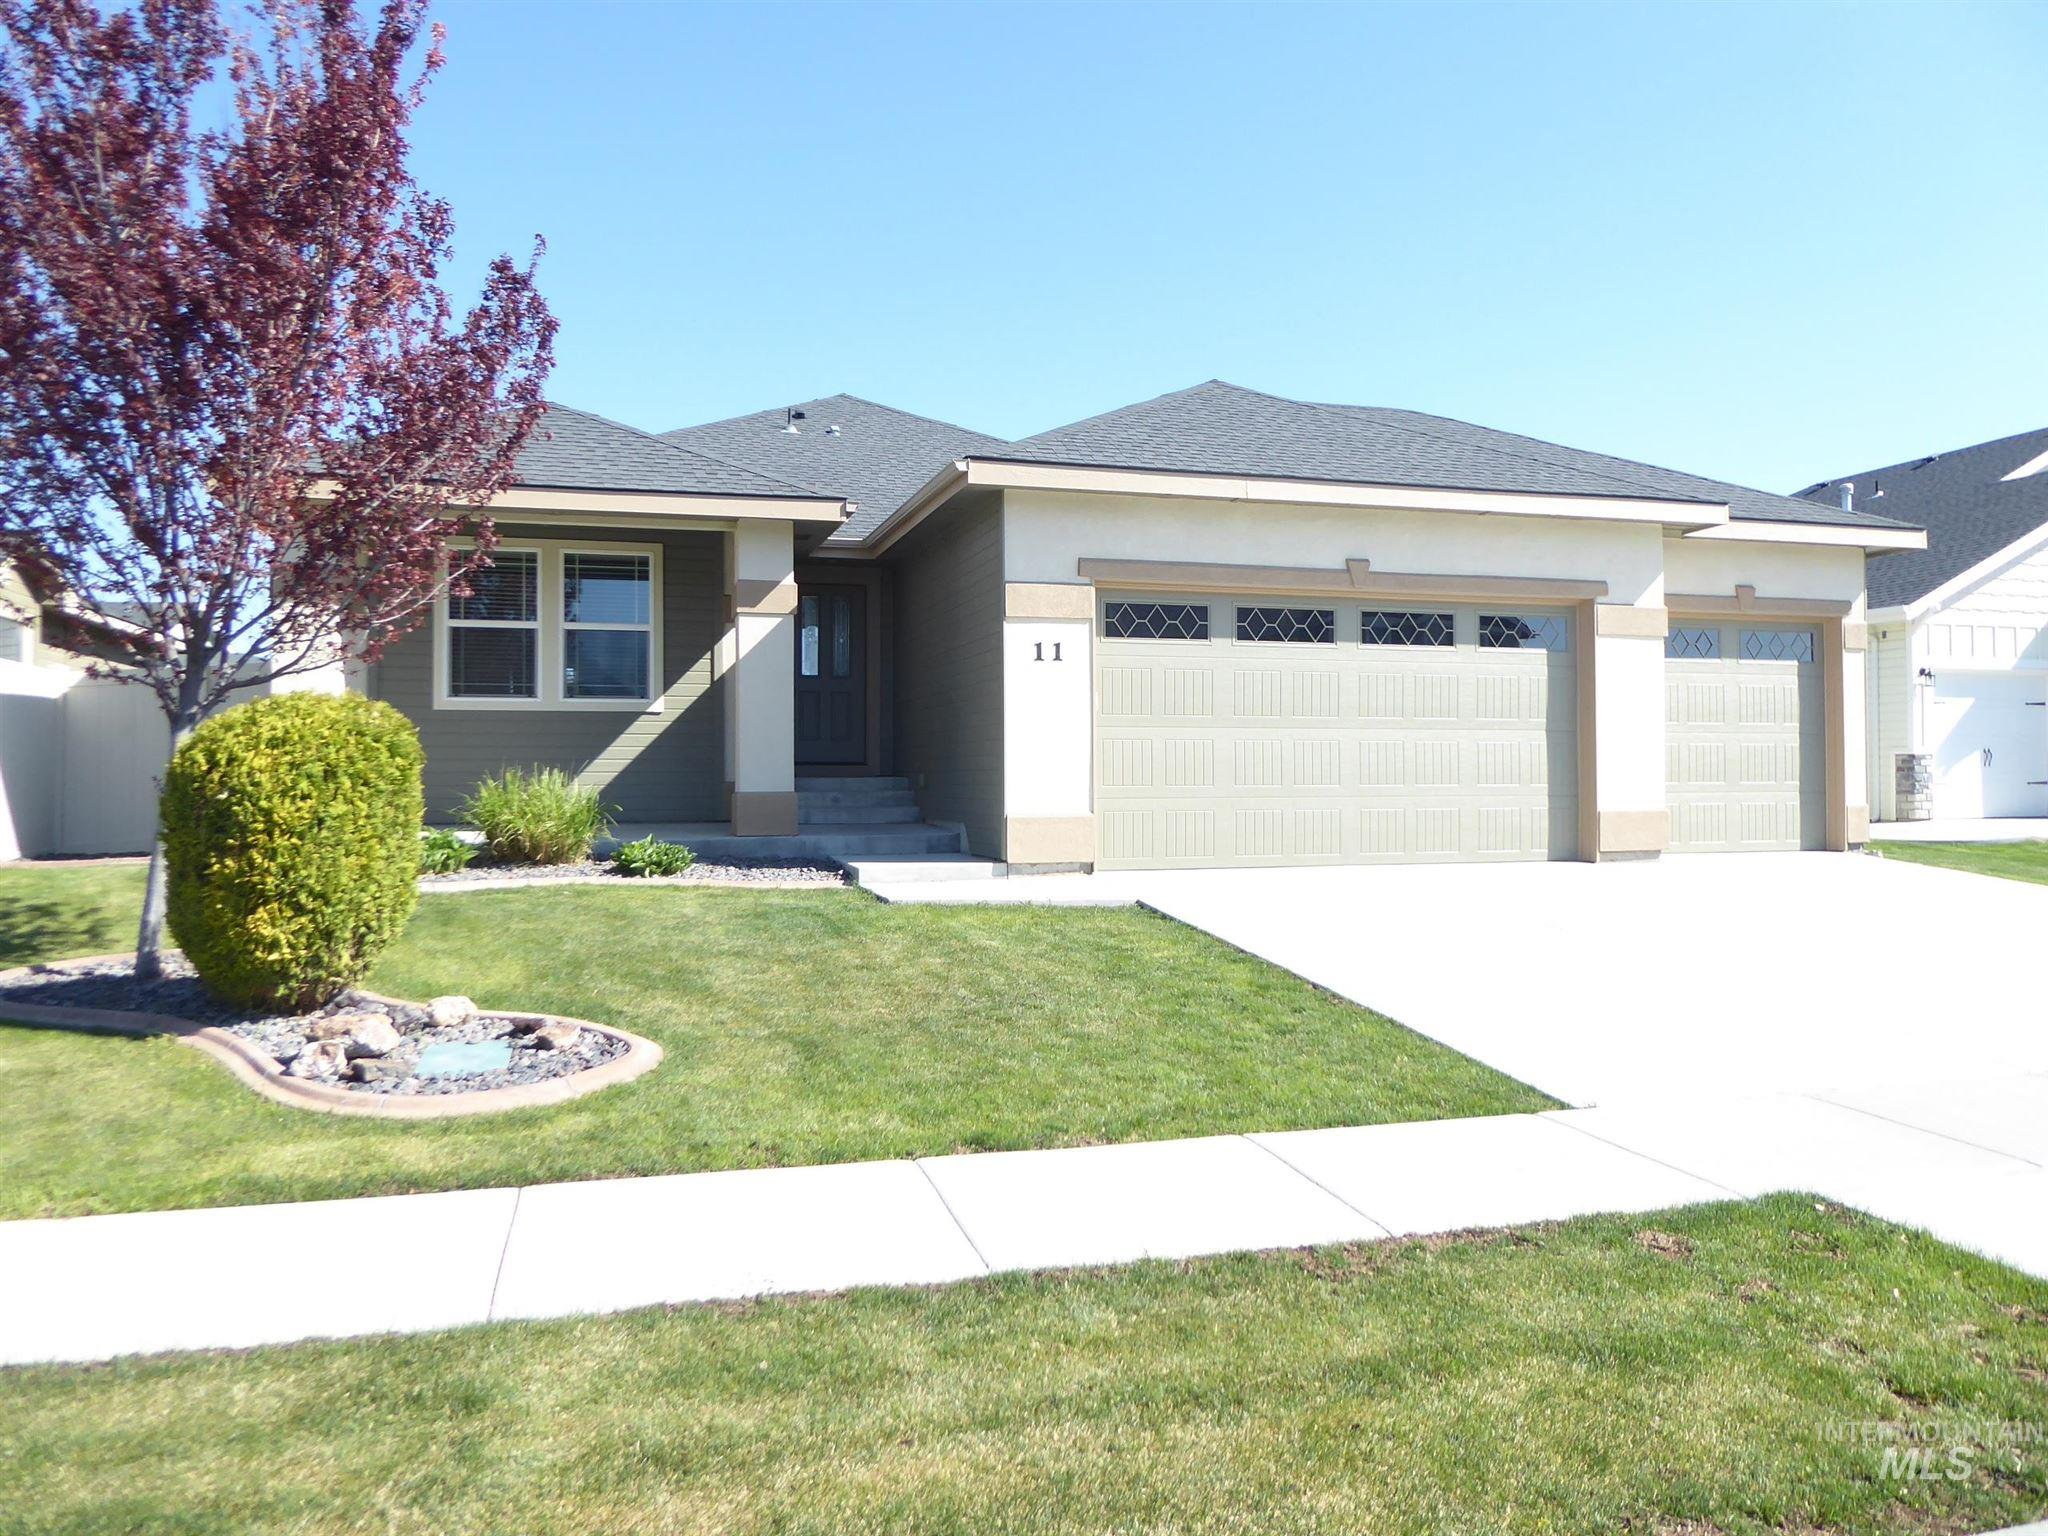 11 Luke Loop Property Photo - Nampa, ID real estate listing